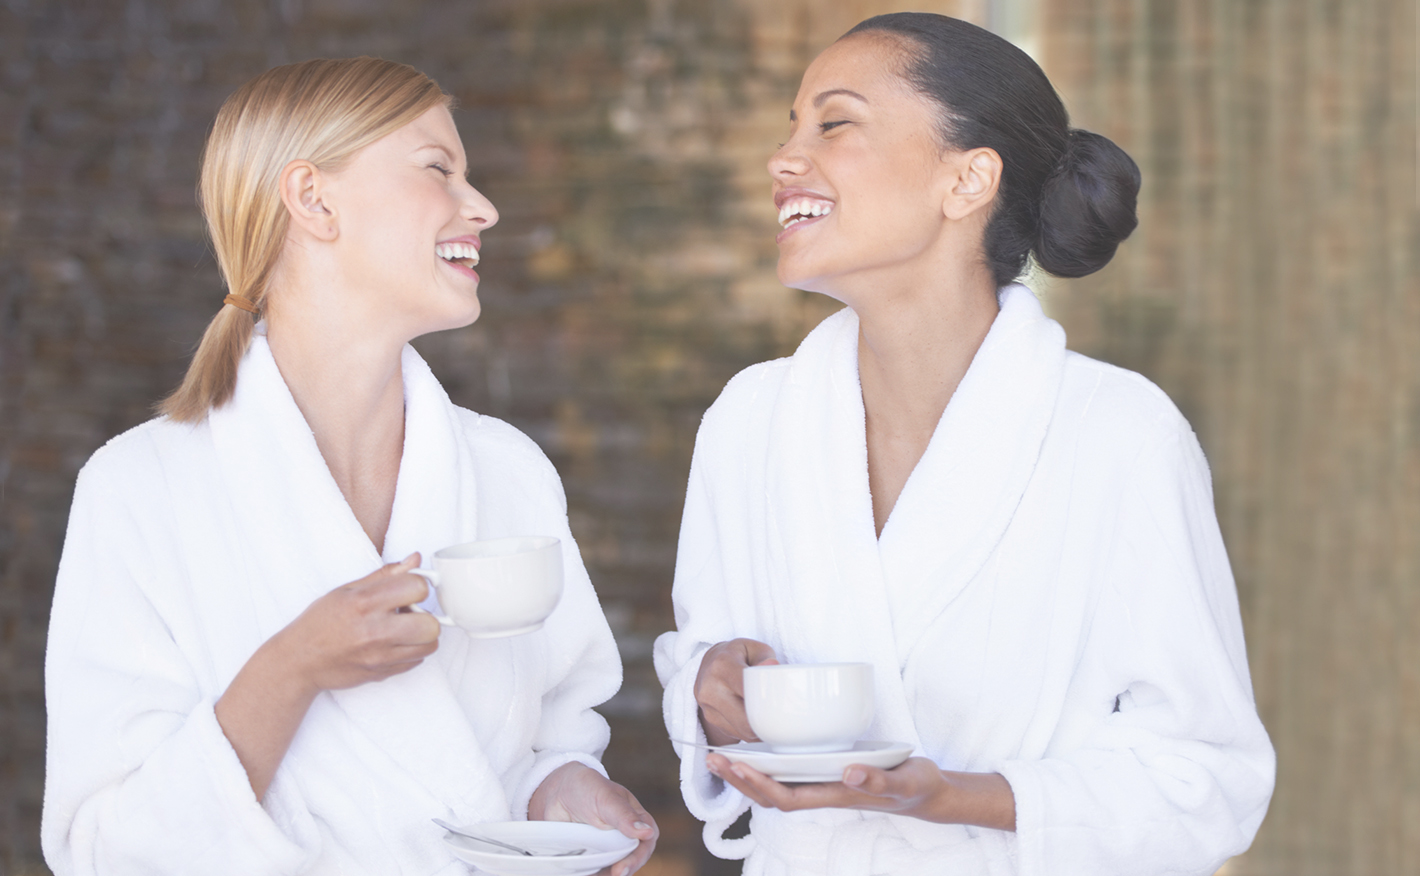 Two women wearing robes and enjoying tea at the spa.